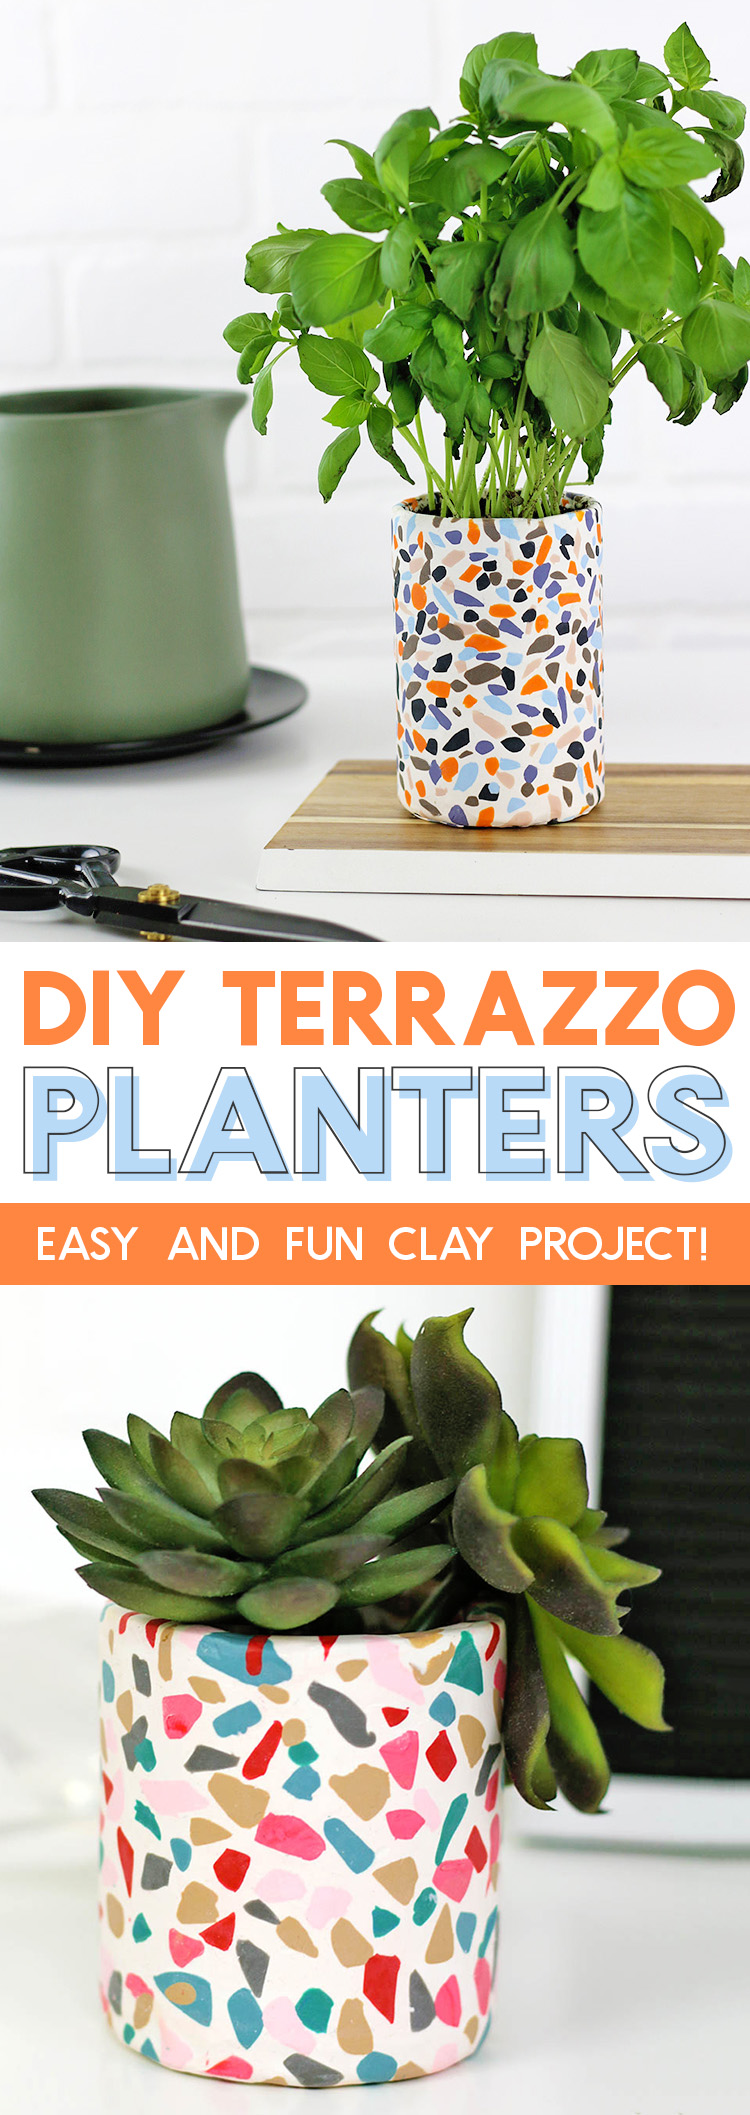 DIY Terrazzo planters made with oven bake clay